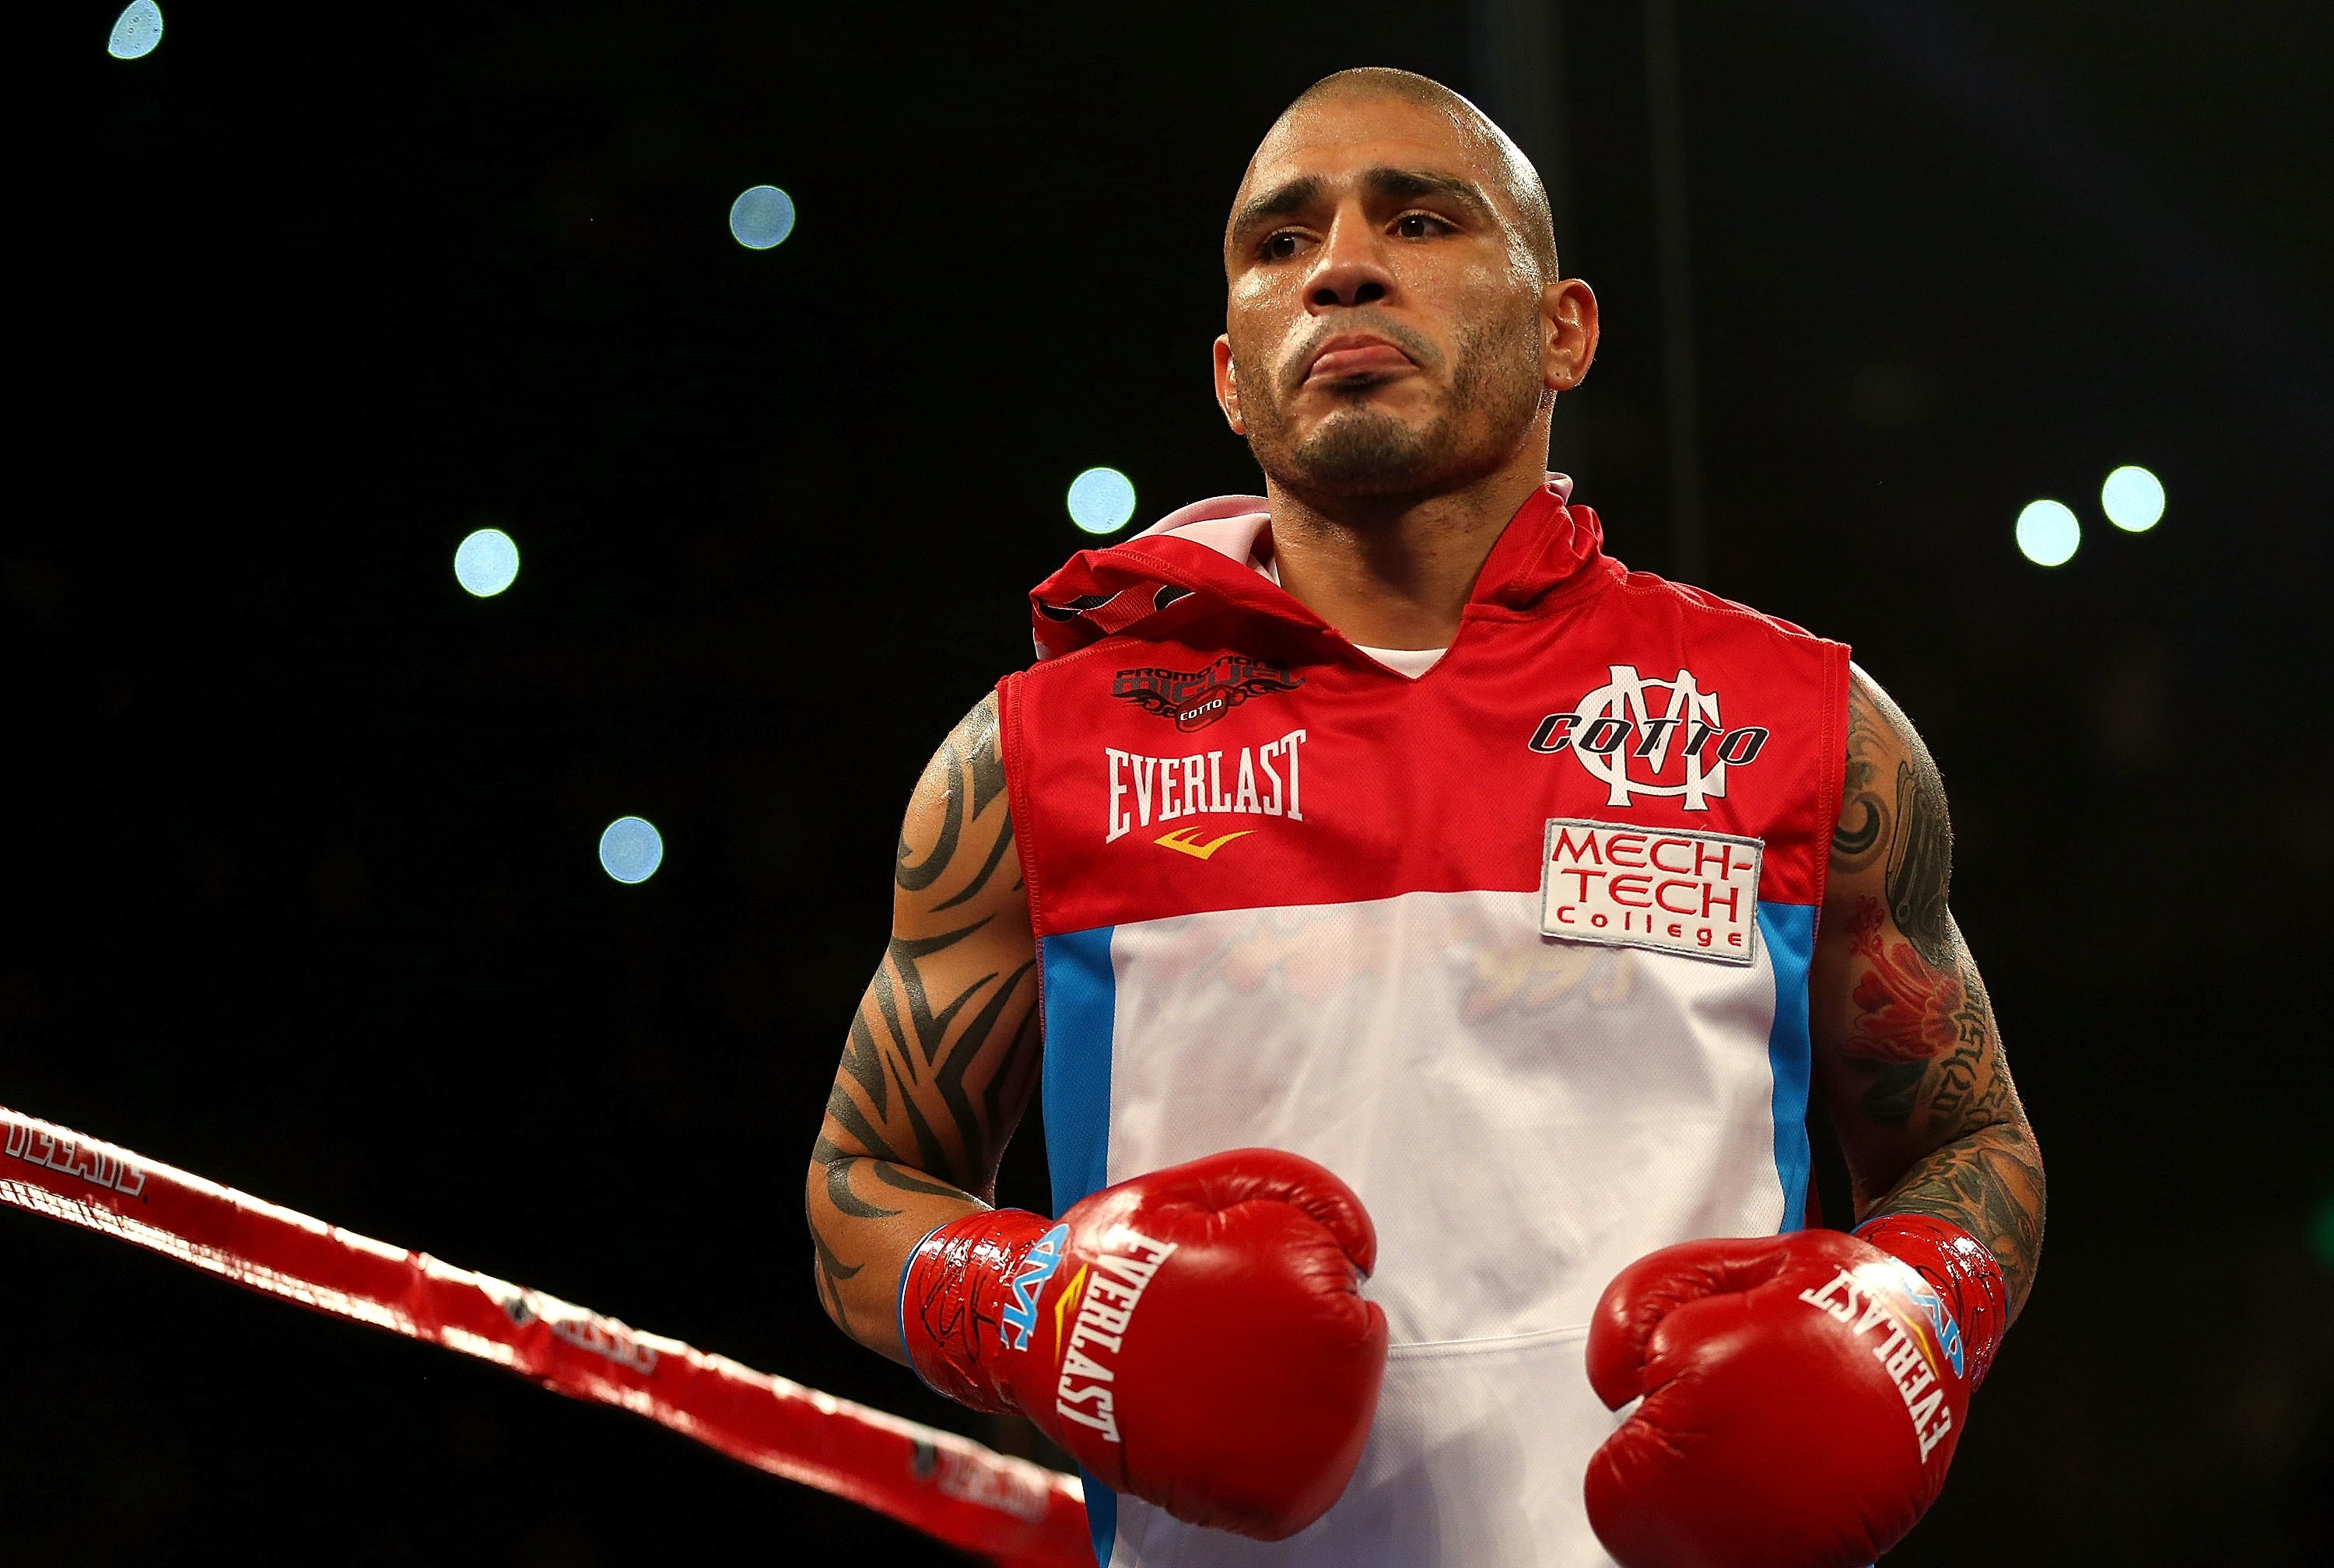 Image   Miguel cotto wallpapers. | Boxing Wiki | FANDOM powered